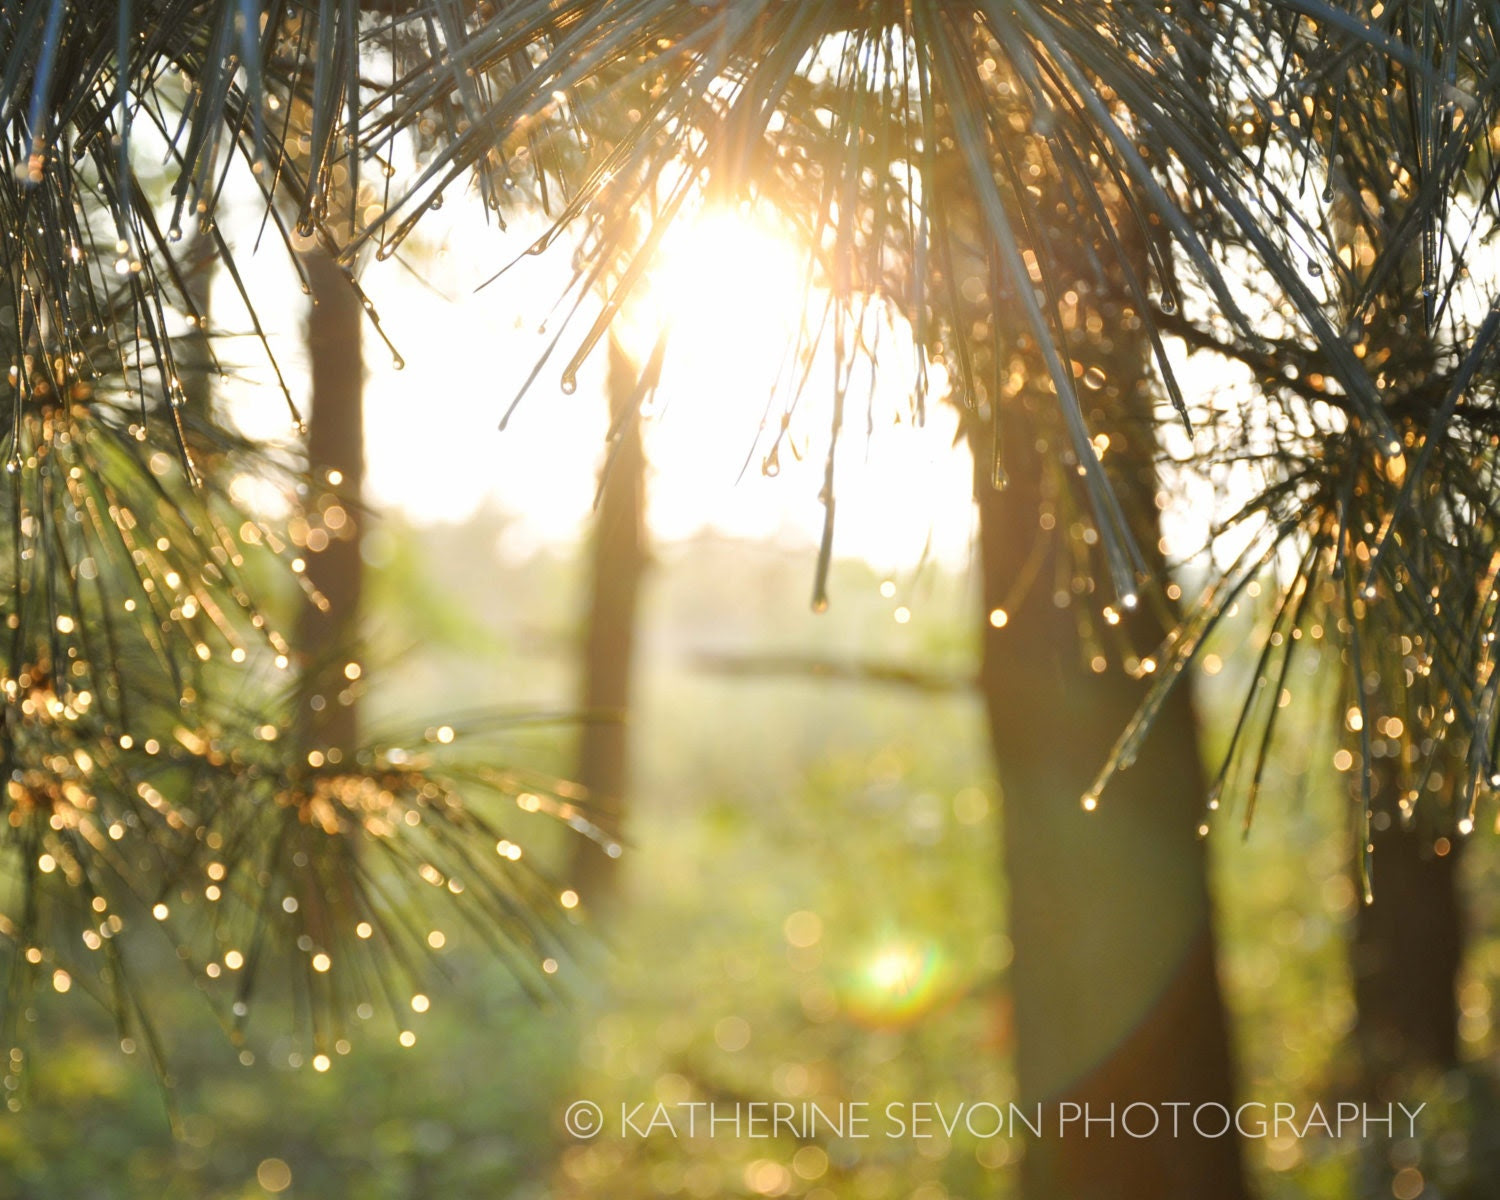 Nature Photography - Fine Art Photography - Pine Trees with Morning Dew - Sun Shining Through Trees - 8x10 Photo Print